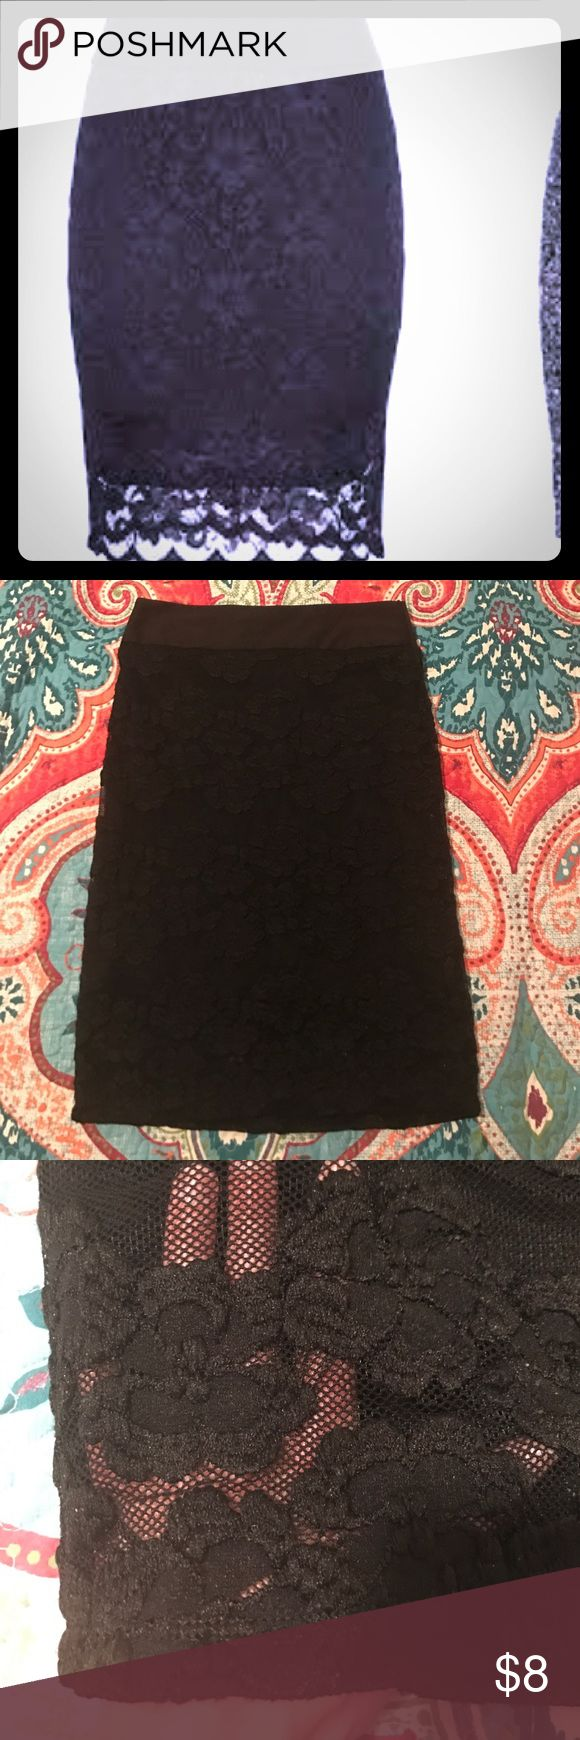 Black Lace Pencil Skirt Beautiful Black Lace pencil skirt. Maurice's brand. In great shape worn quite a bit. It's a great skirt!! Maurices Skirts Pencil